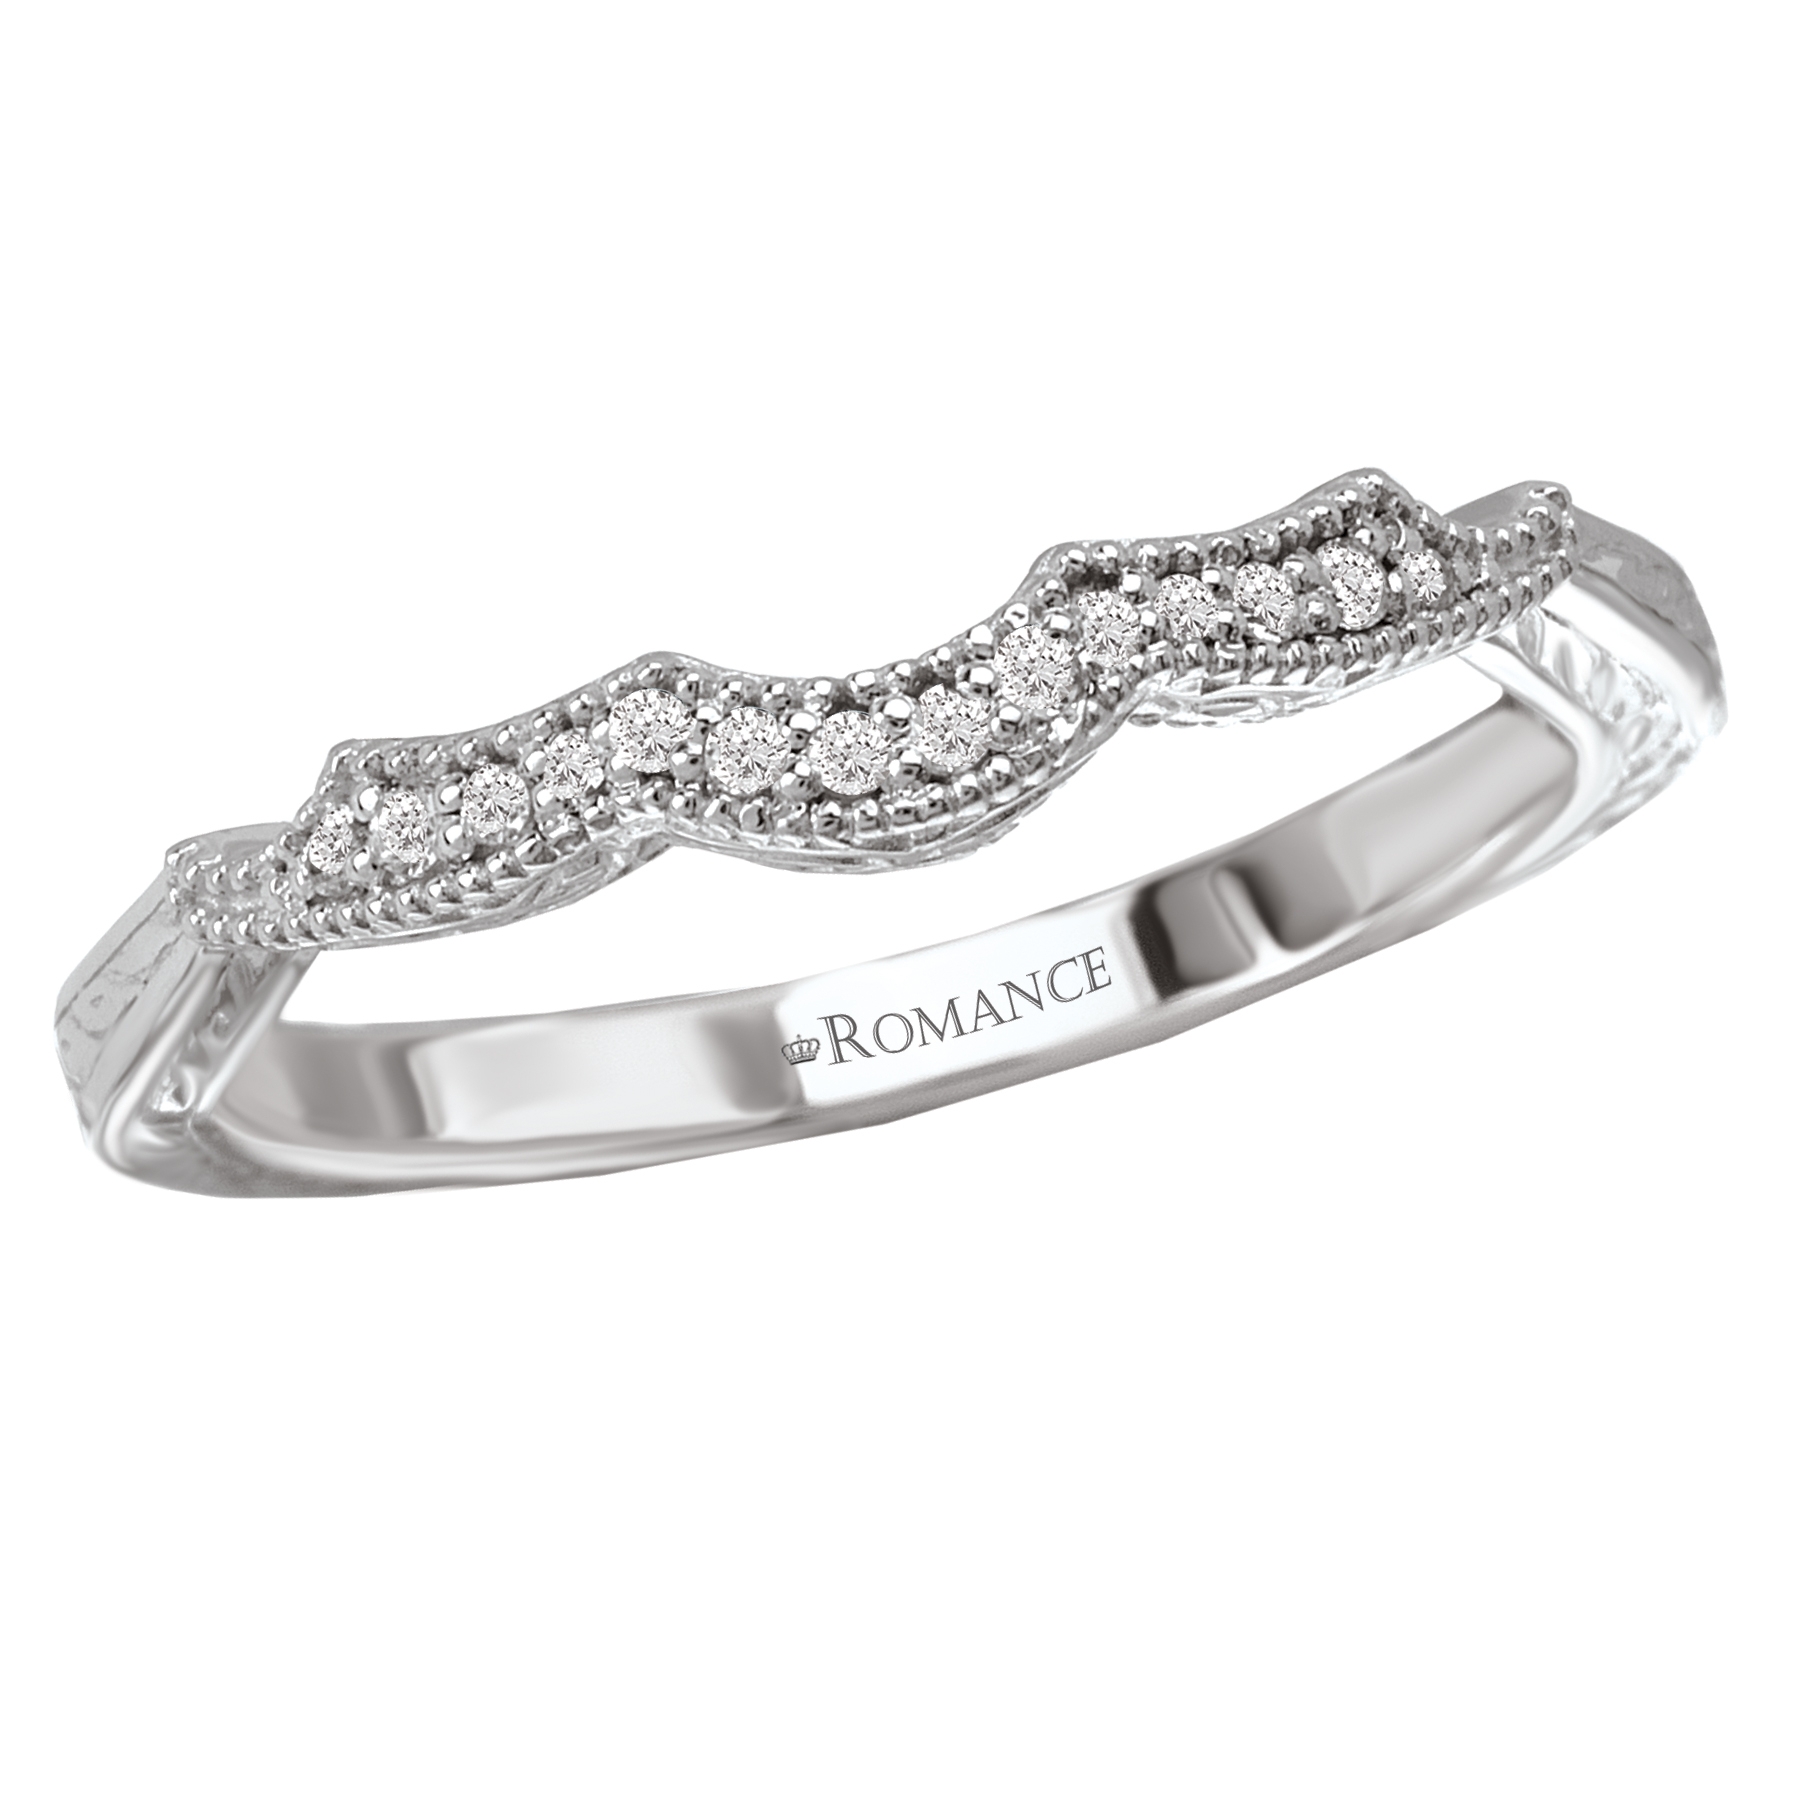 Romance Wedding Bands 117527-W product image